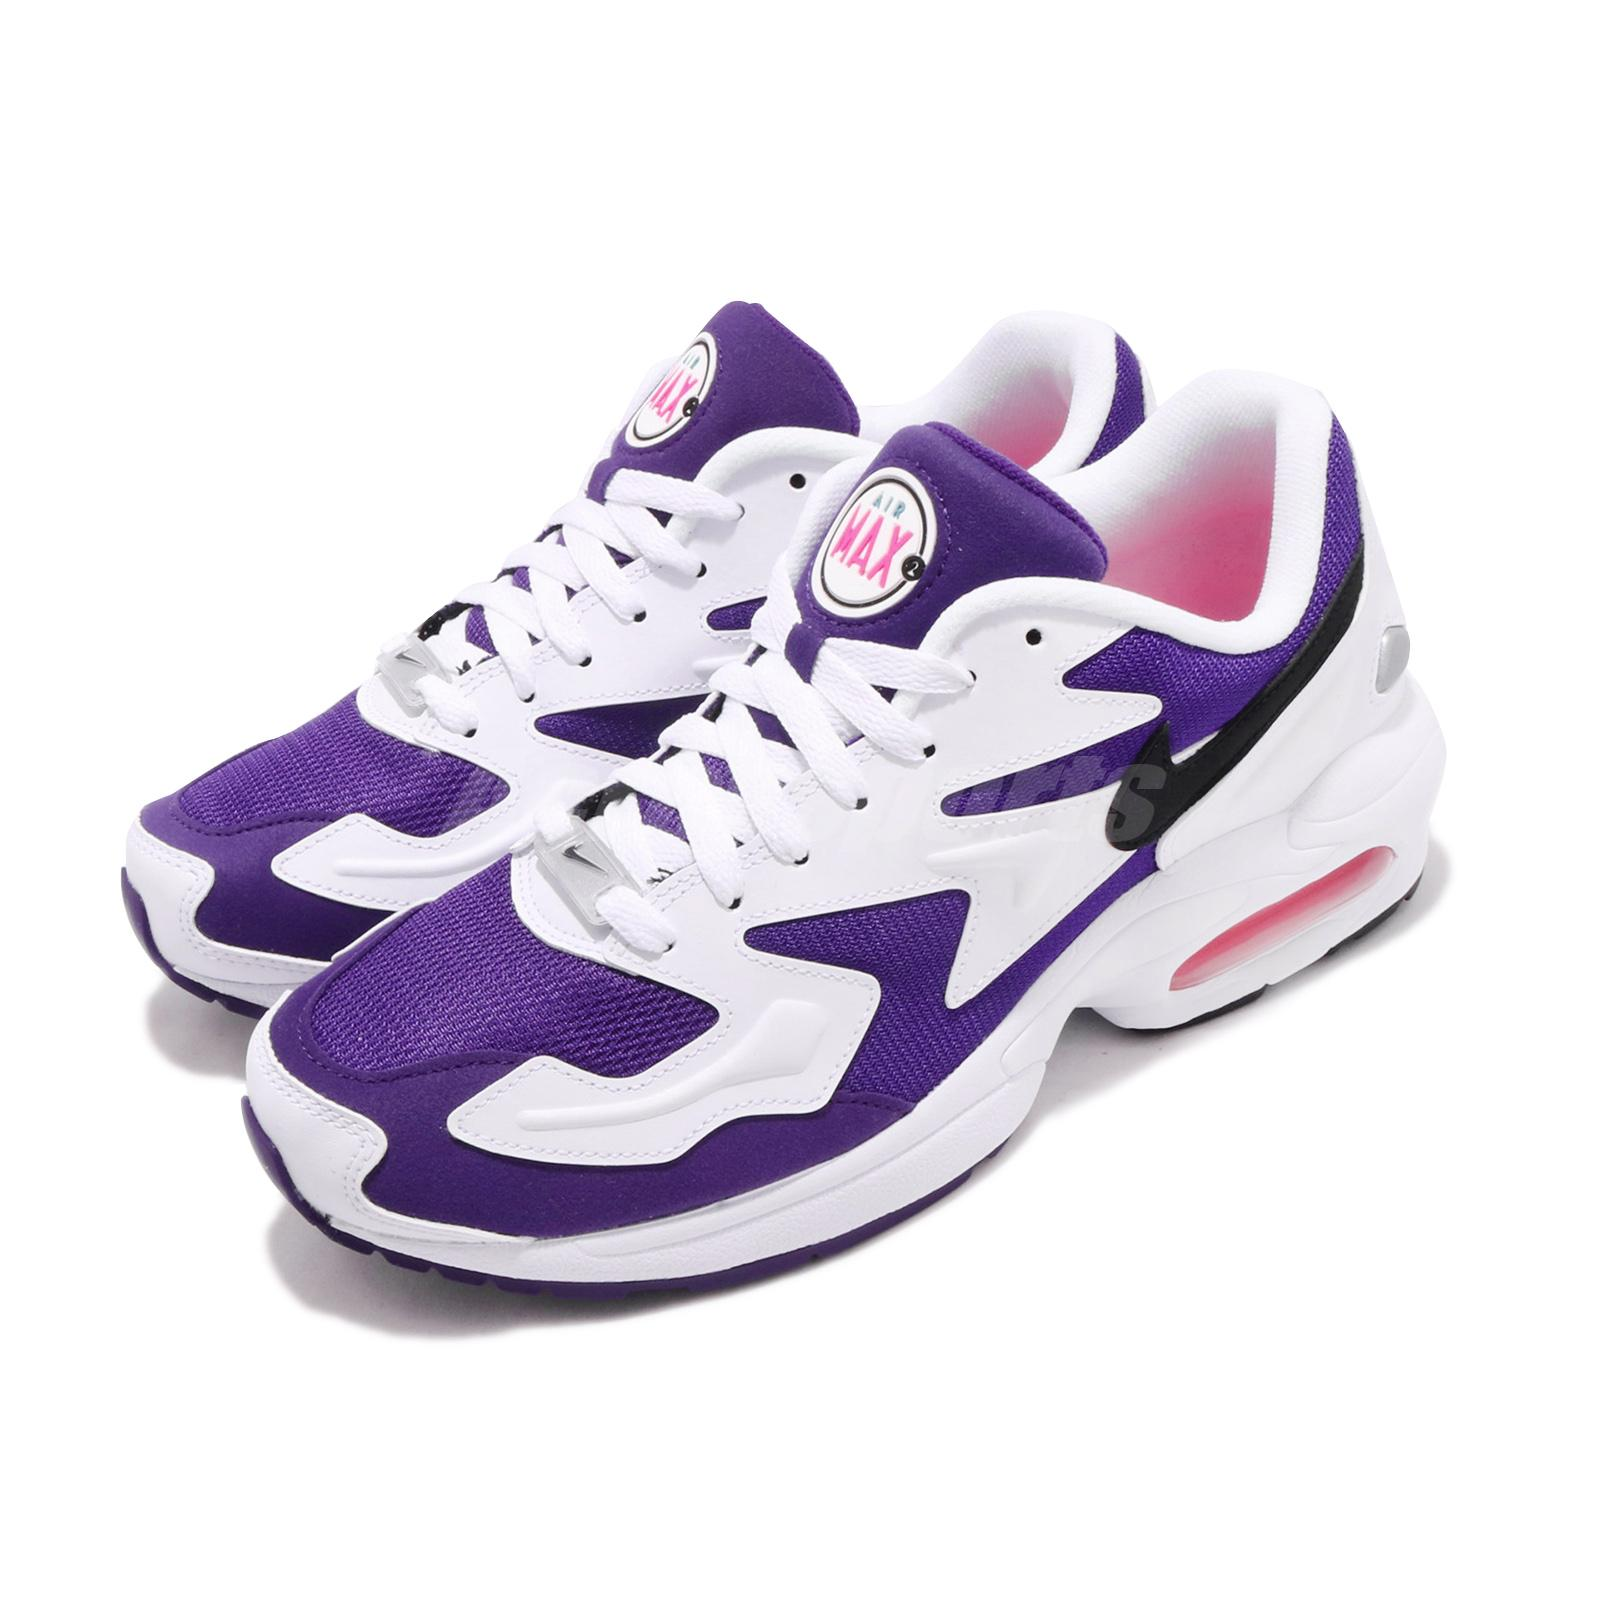 Details about Nike Air Max2 Light Purple Berry White Pink Black Men Running  Shoes AO1741-103